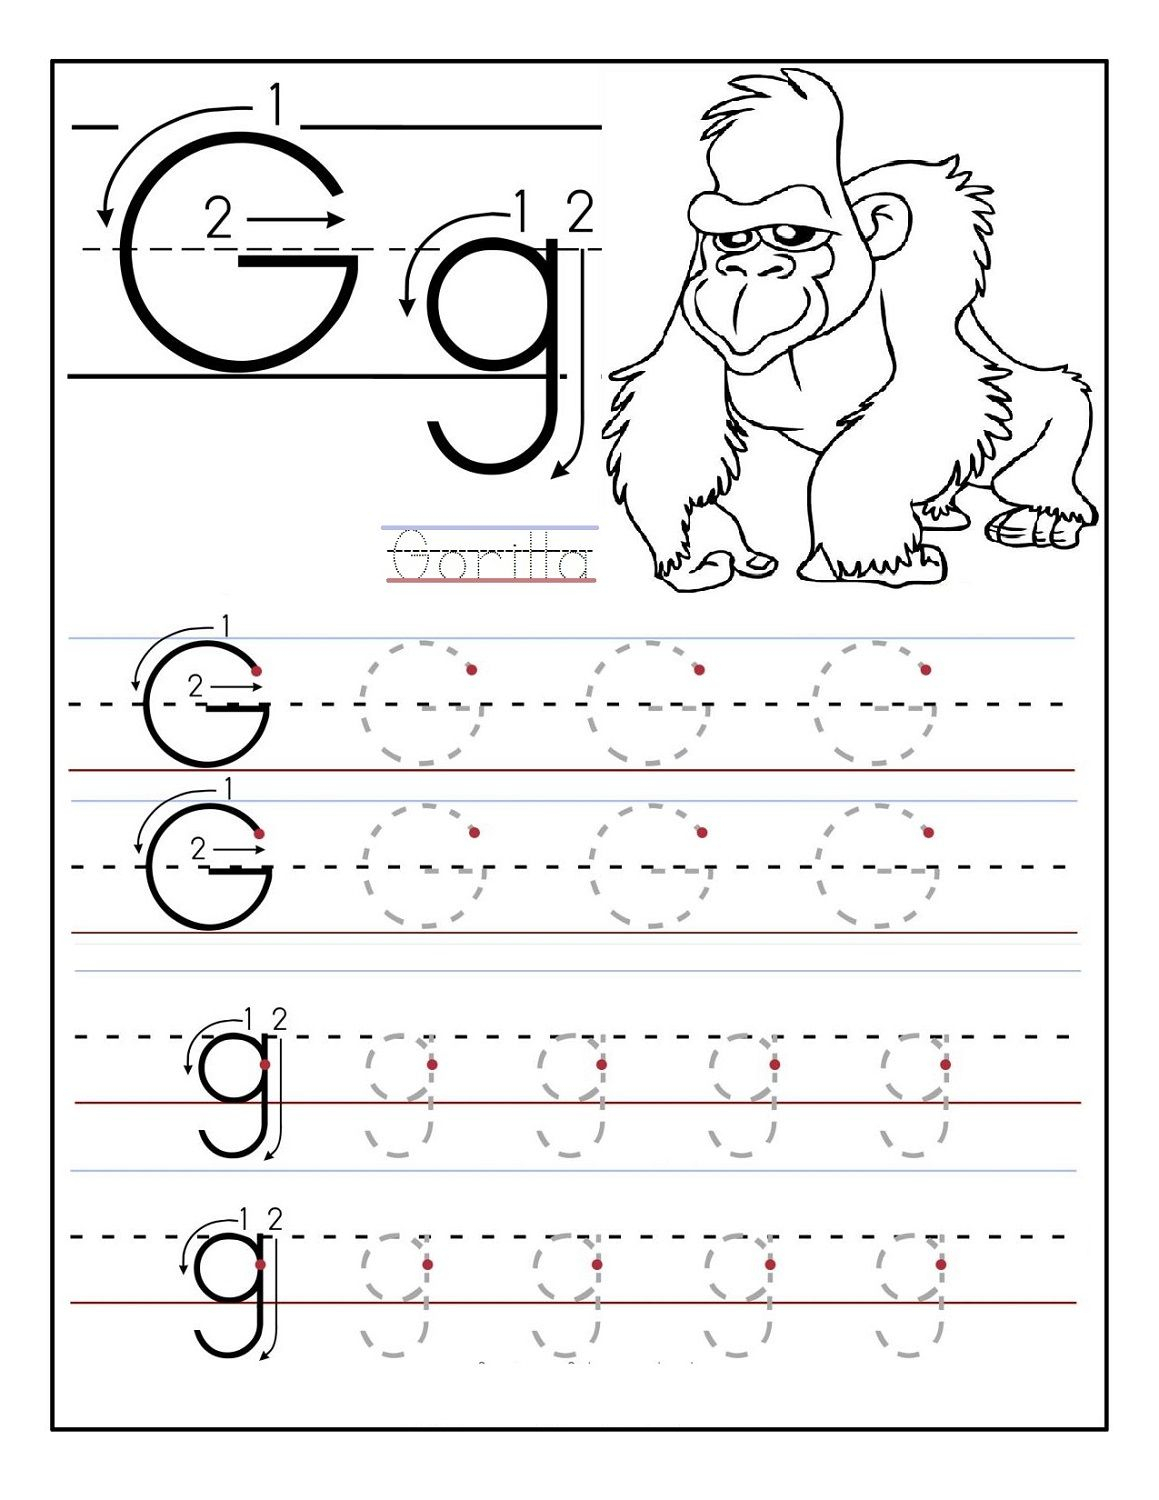 Free Traceable Alphabet Worksheets Gorilla | Alphabet throughout Letter G Tracing Sheet